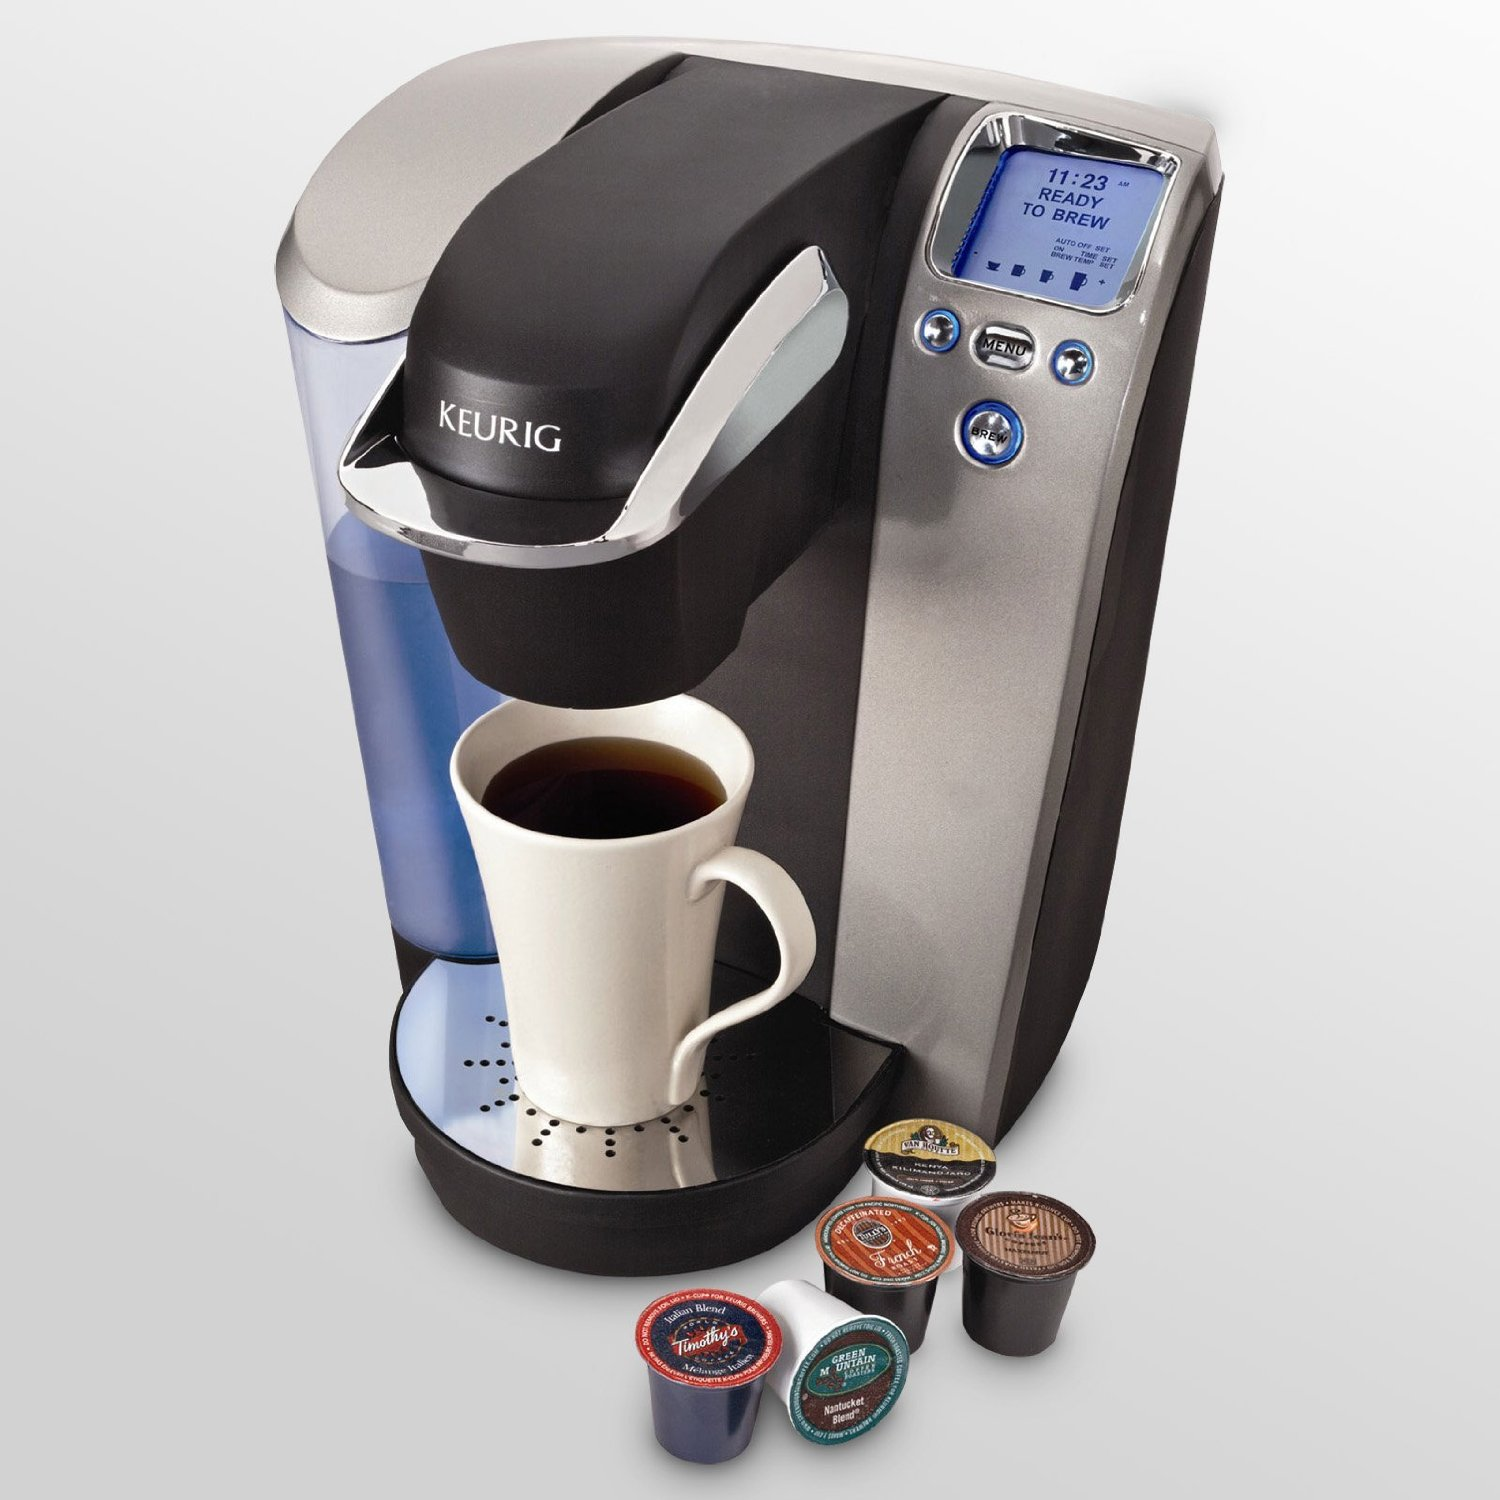 Coffee Maker For One : Registry Vote: Cuisinart or Keurig Coffee Maker? SimpleRegistry